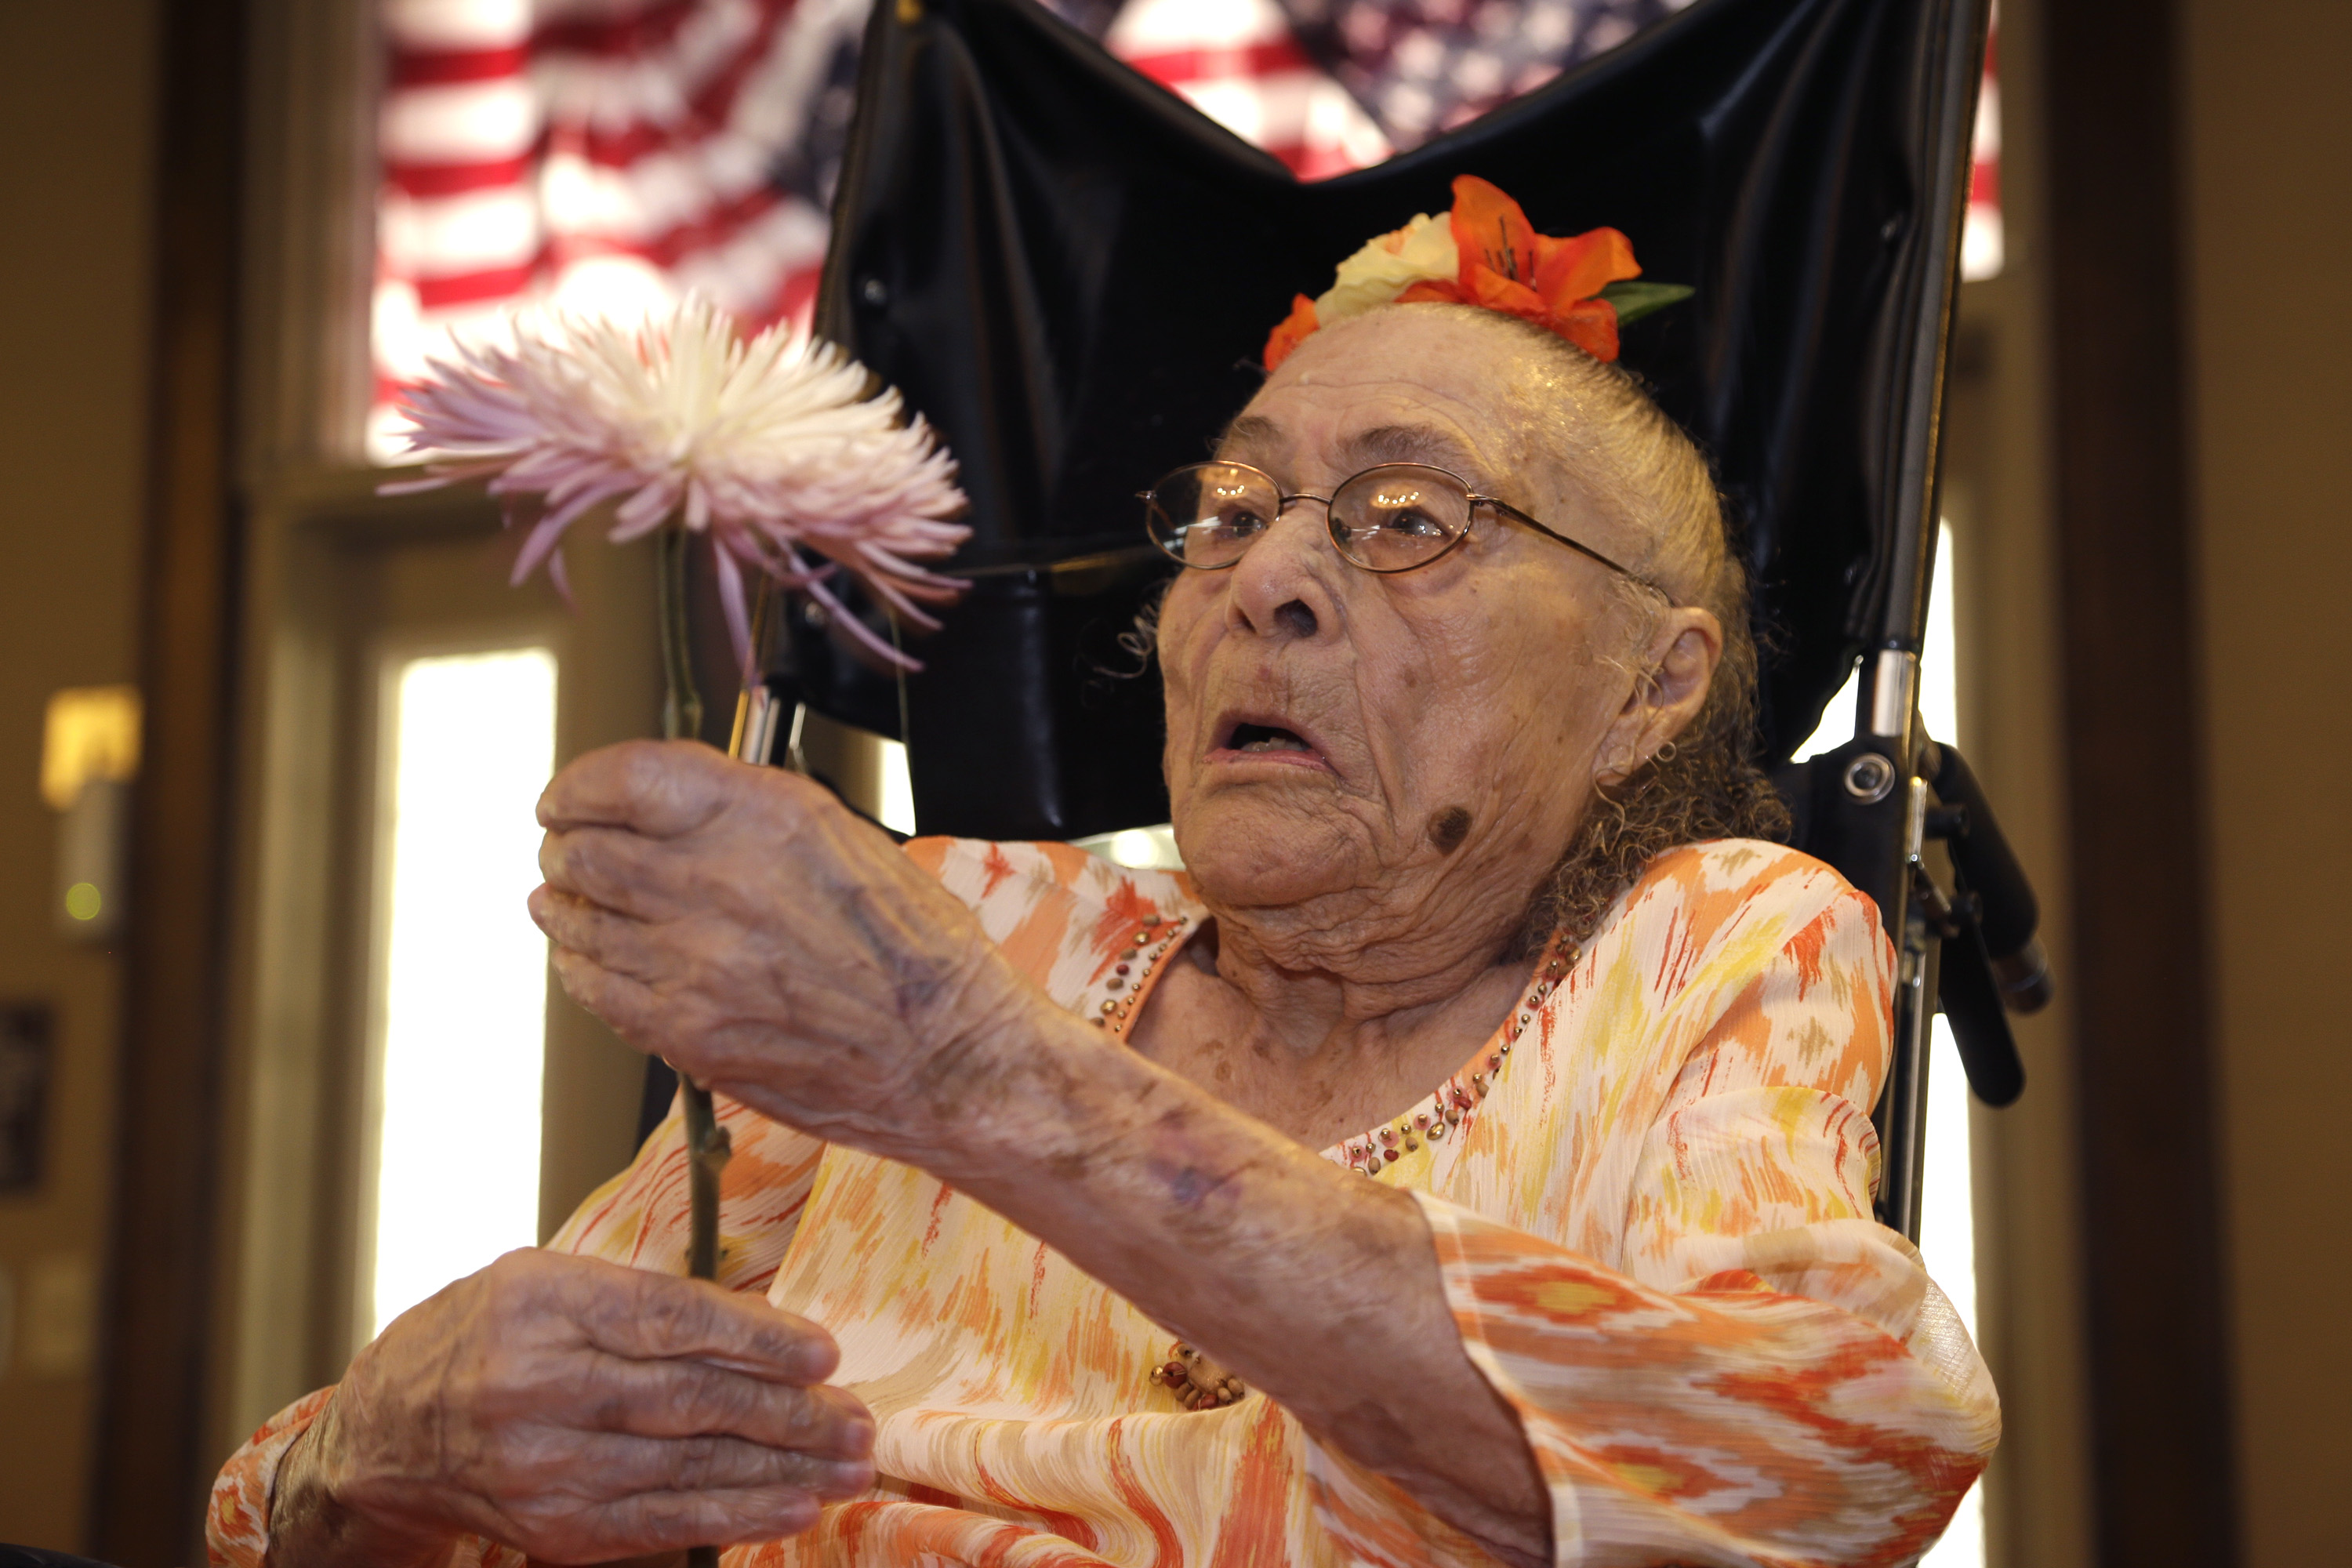 Gertrude Weaver holds a flower given to her a day before her 116th birthday, at Silver Oaks Health and Rehabilitation Center in Camden, Ark., July 3, 2014.  The Gerontology Research Group says Weaver is the oldest person in the United States and second-oldest person in the world.